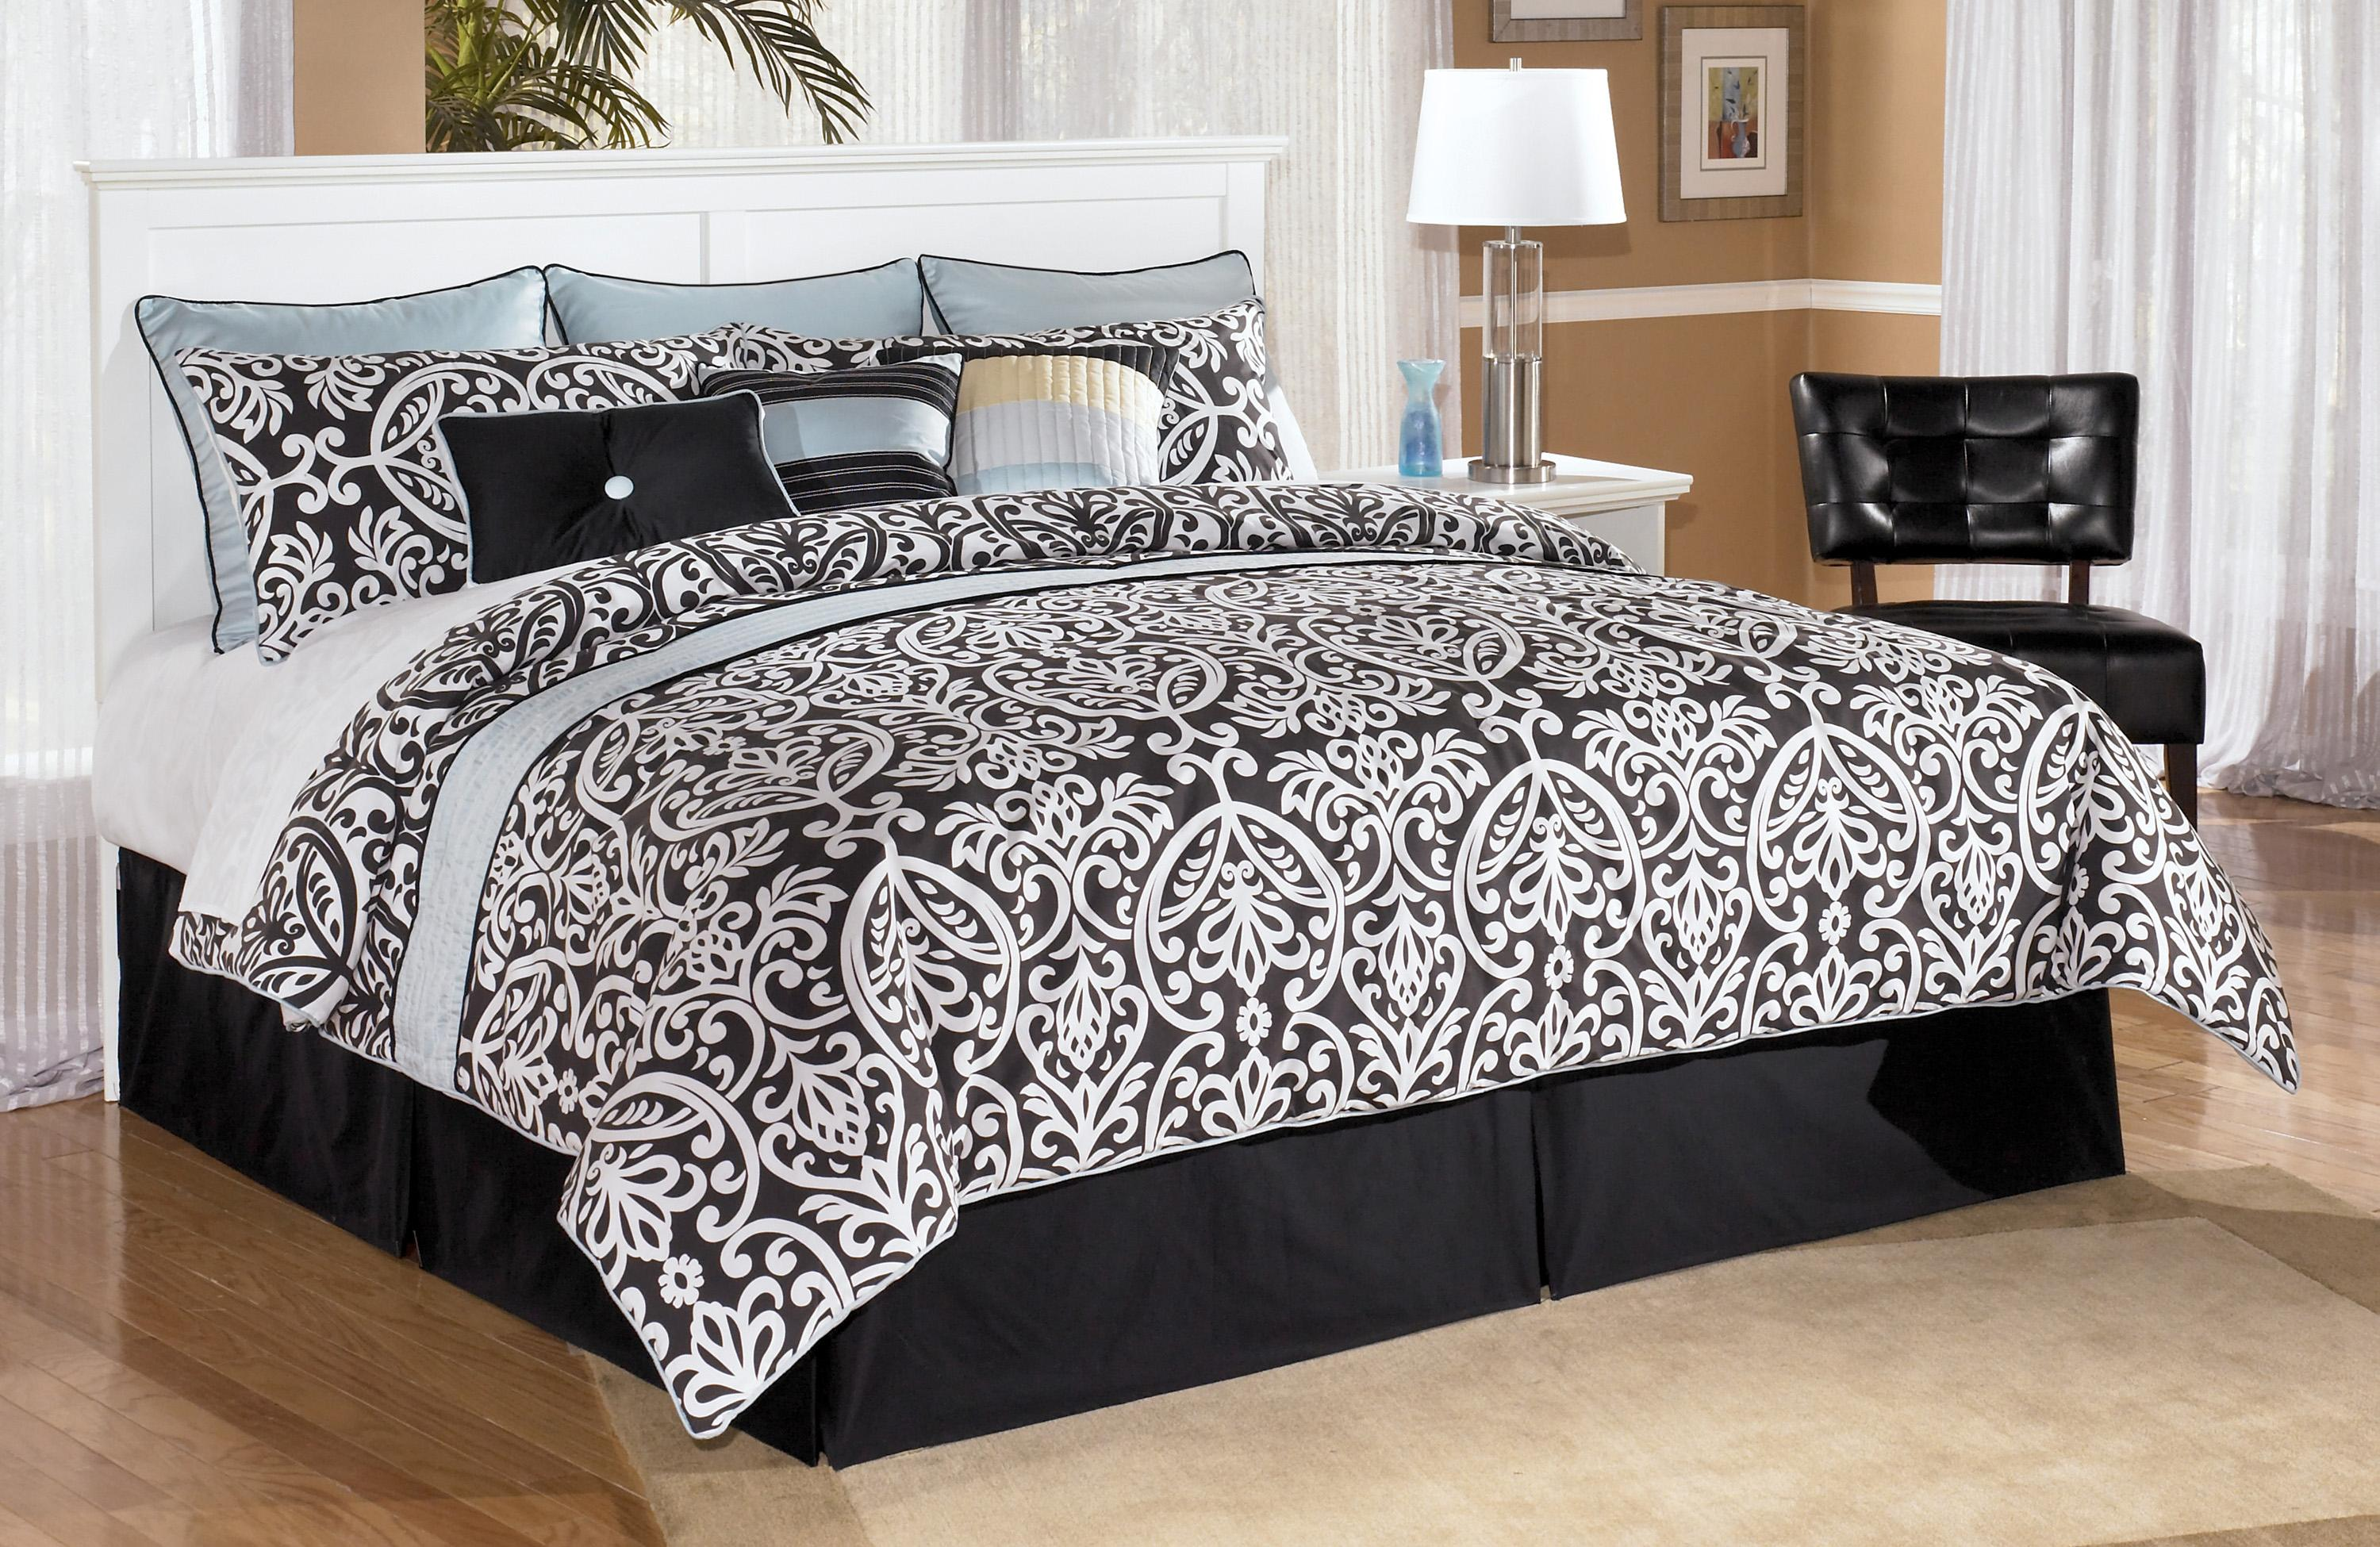 Signature Design by Ashley Bostwick Shoals King/Cal King Panel Headboard - Item Number: B139-58